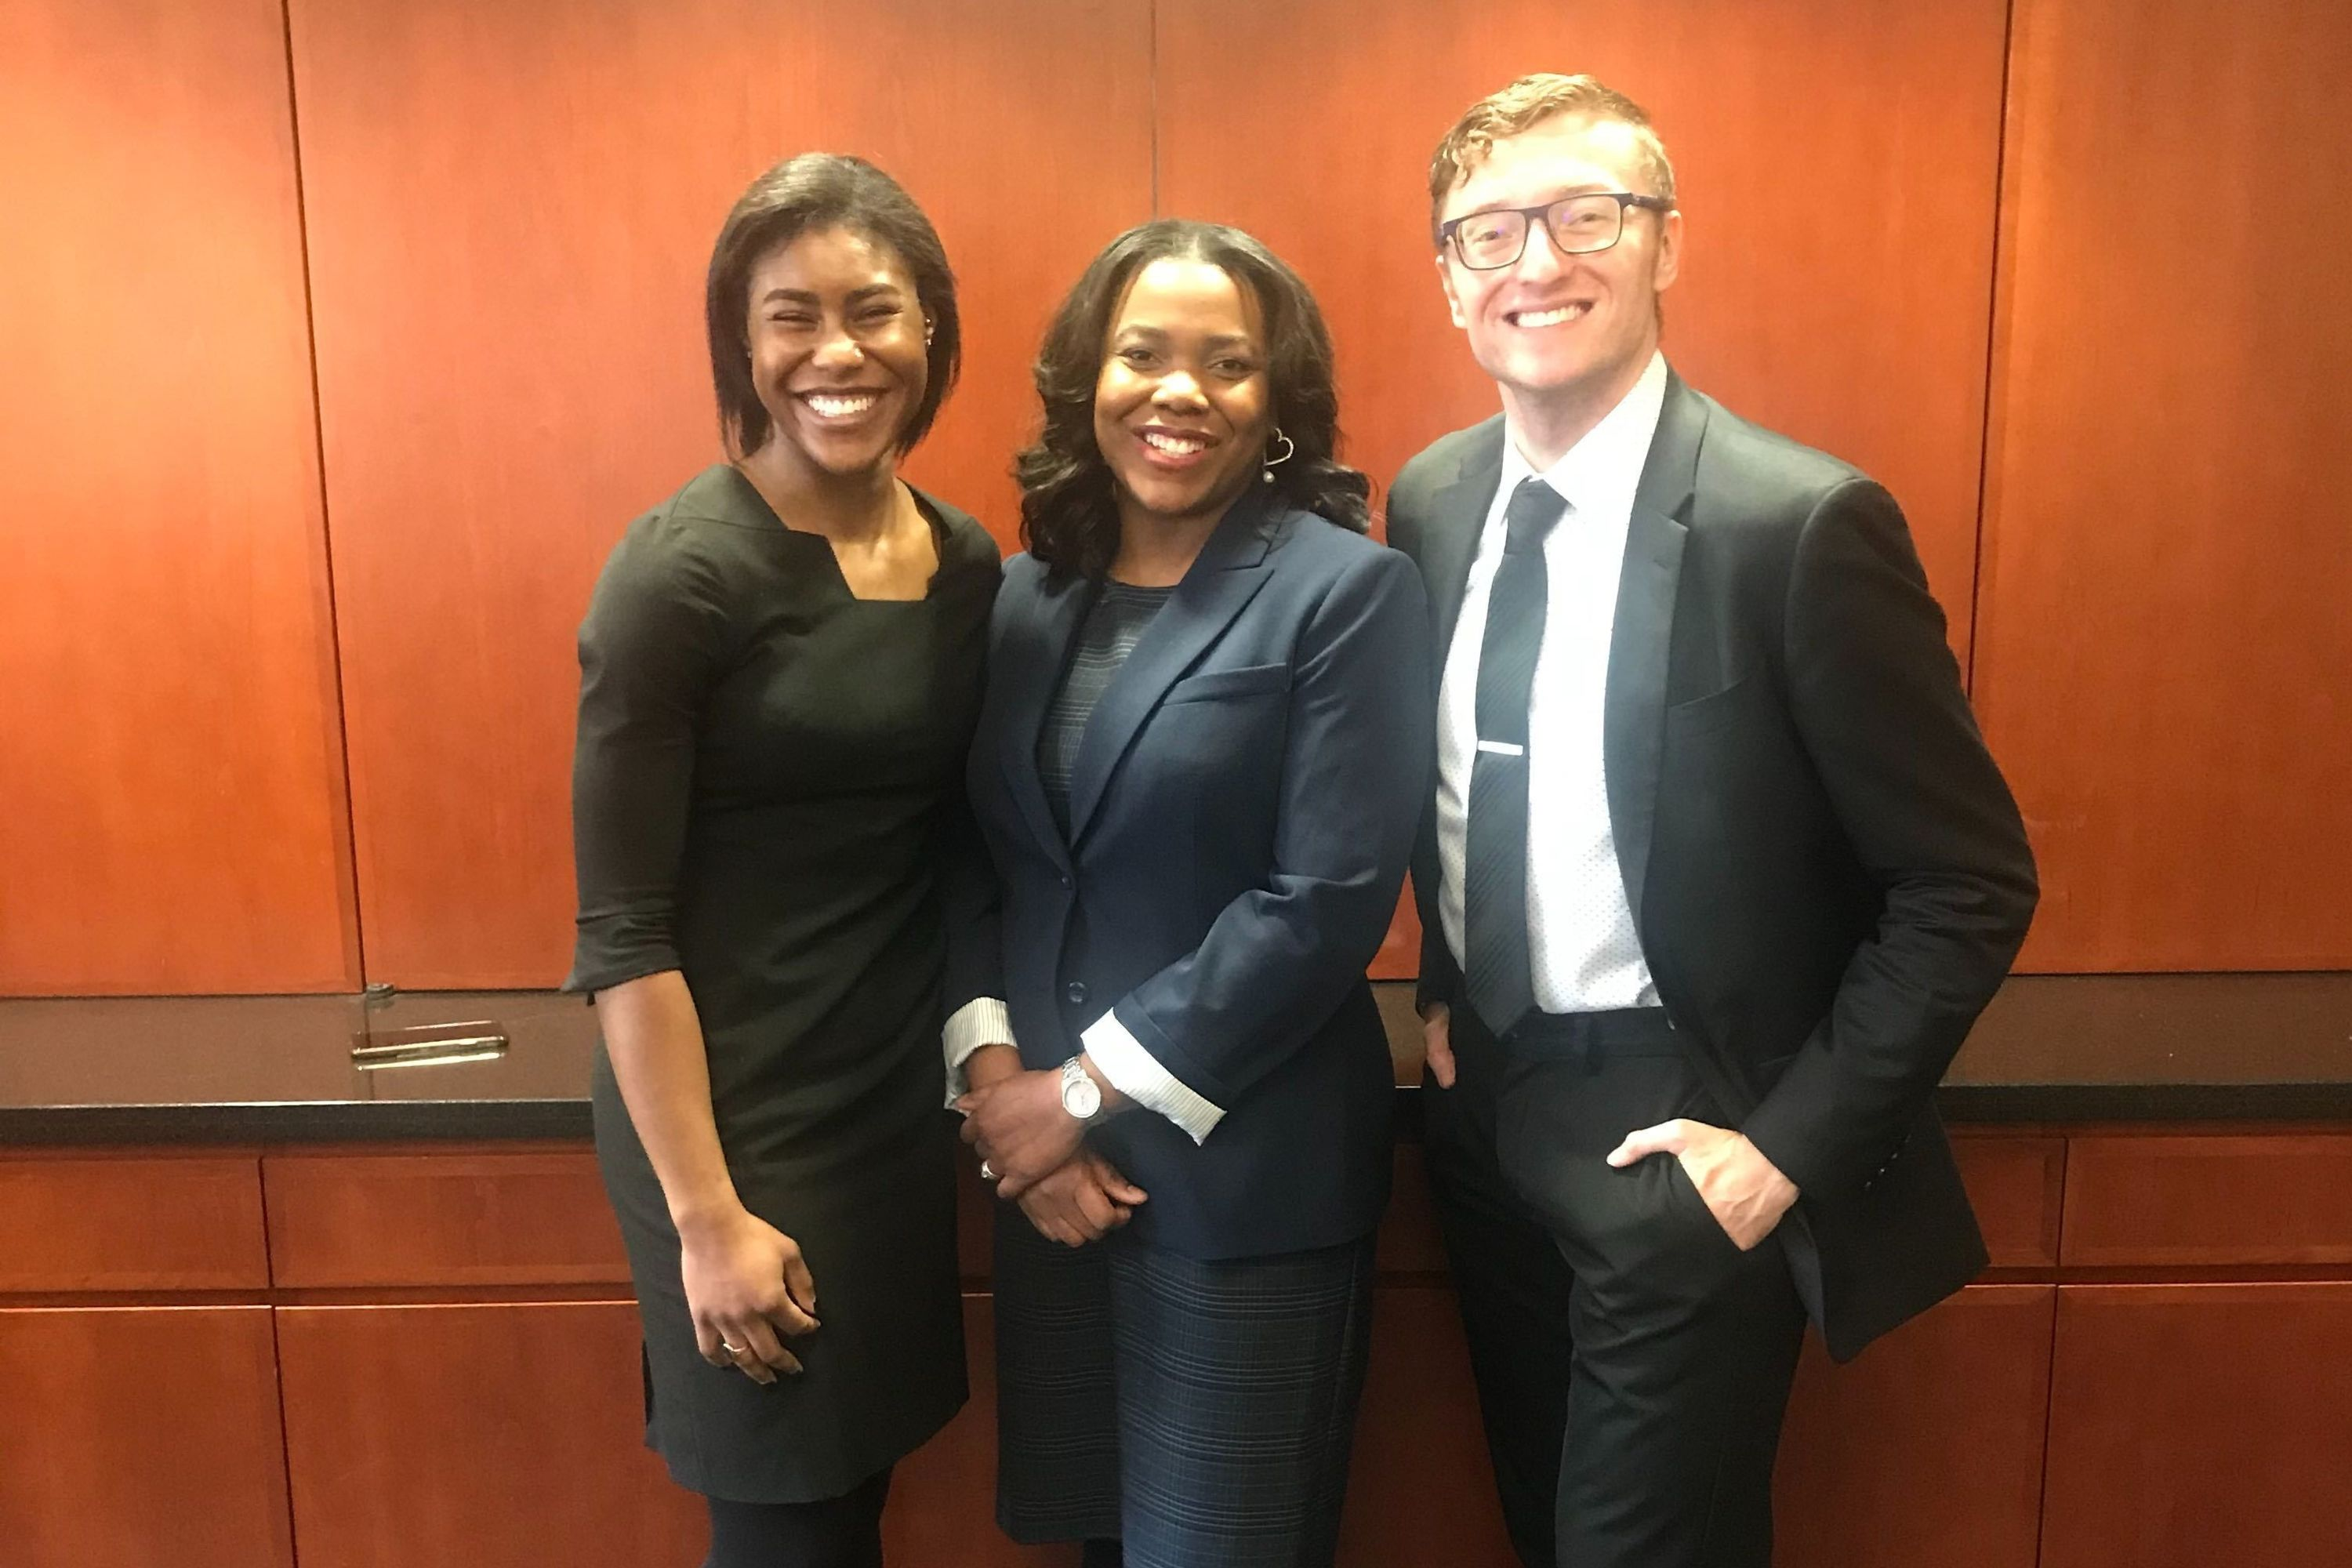 Fall 2019 ABA Negotiation Regional Competition Champions